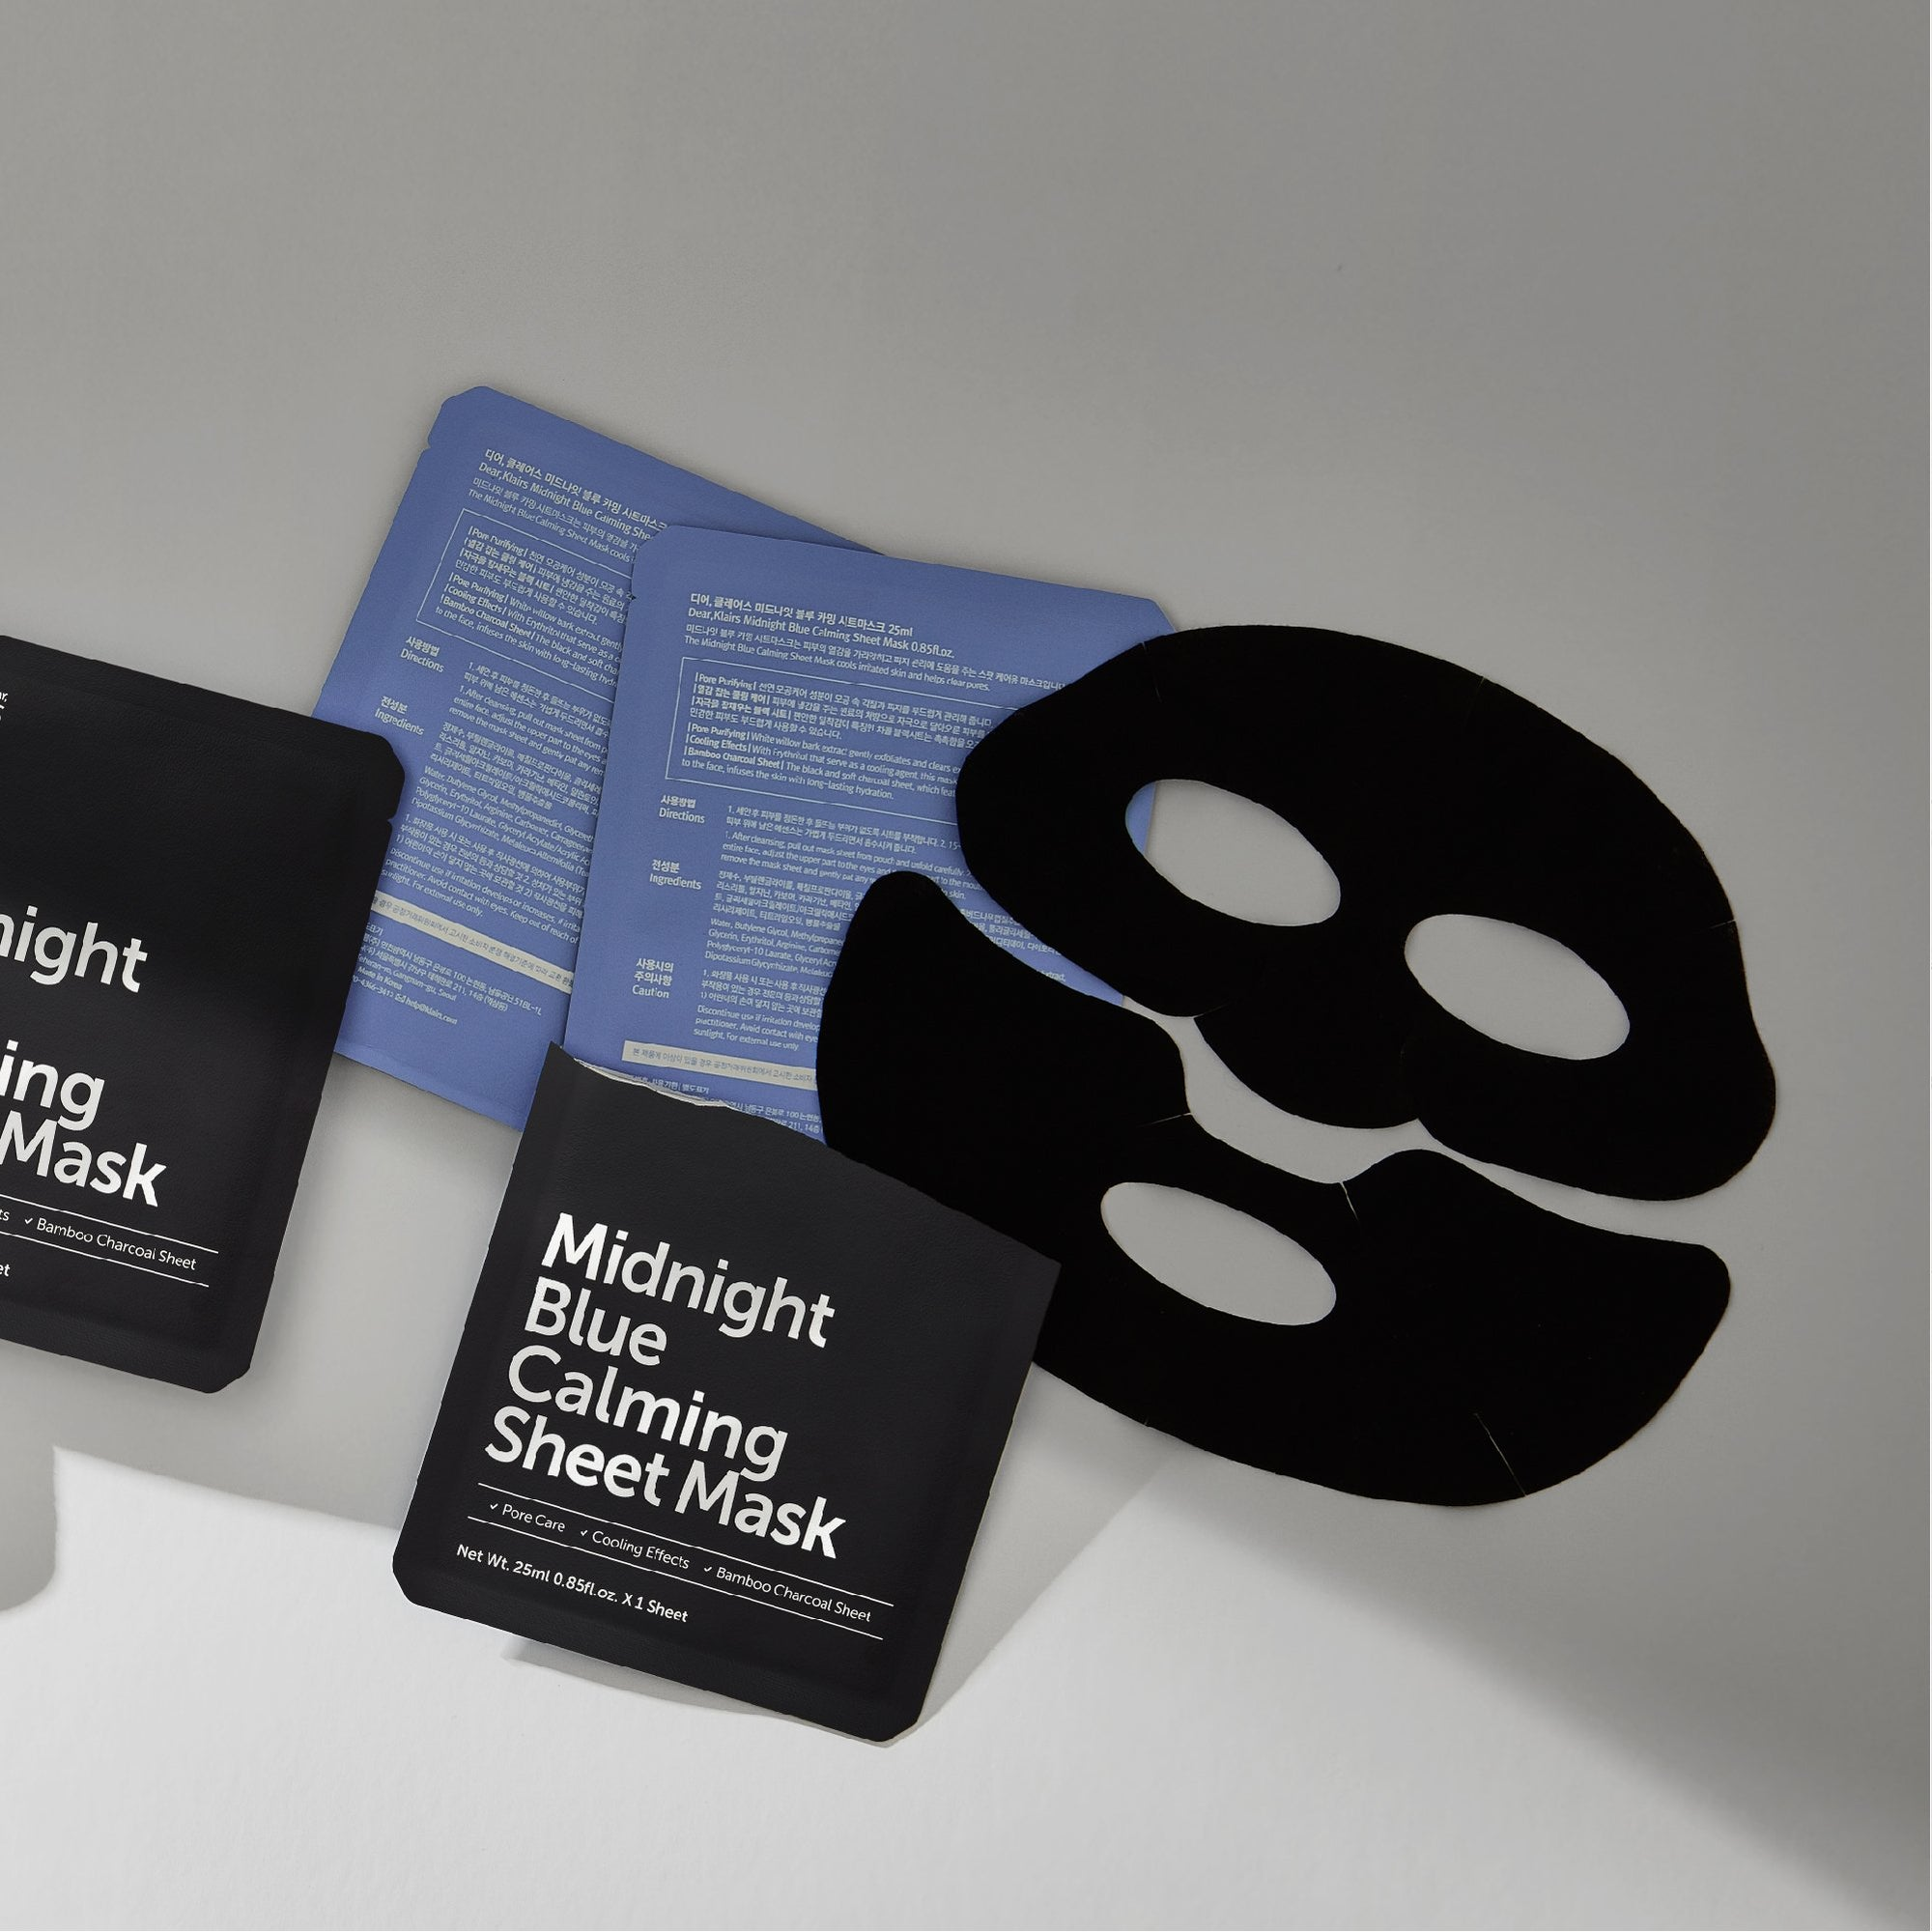 Midnight Blue Calming Sheet Mask by Klairs #15